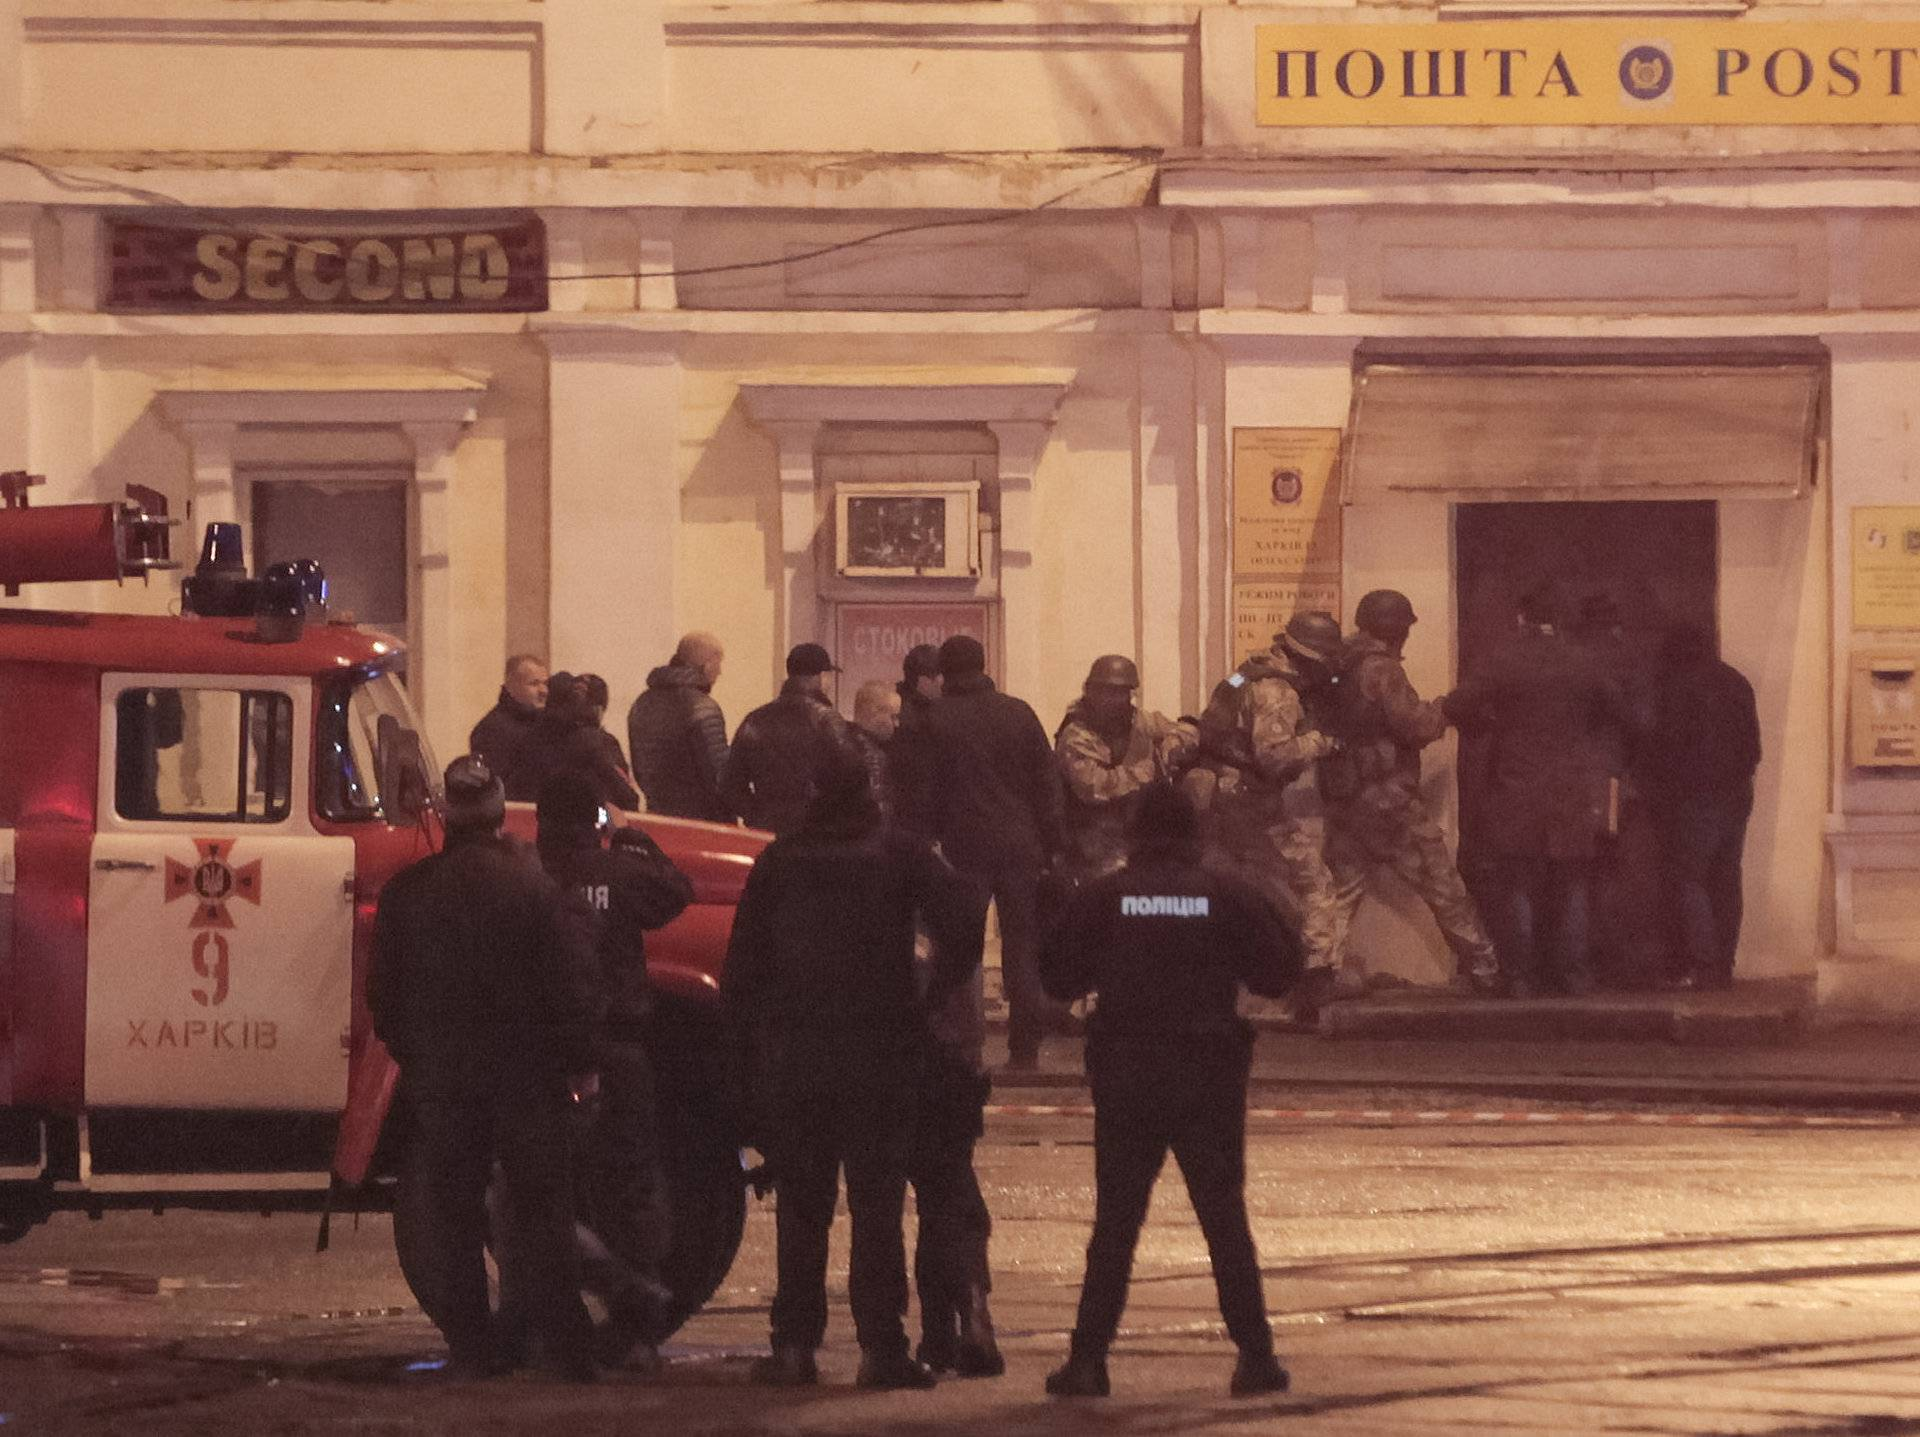 Members of a police special operations unit gather outside a post office, where a man took people hostage, in Kharkiv